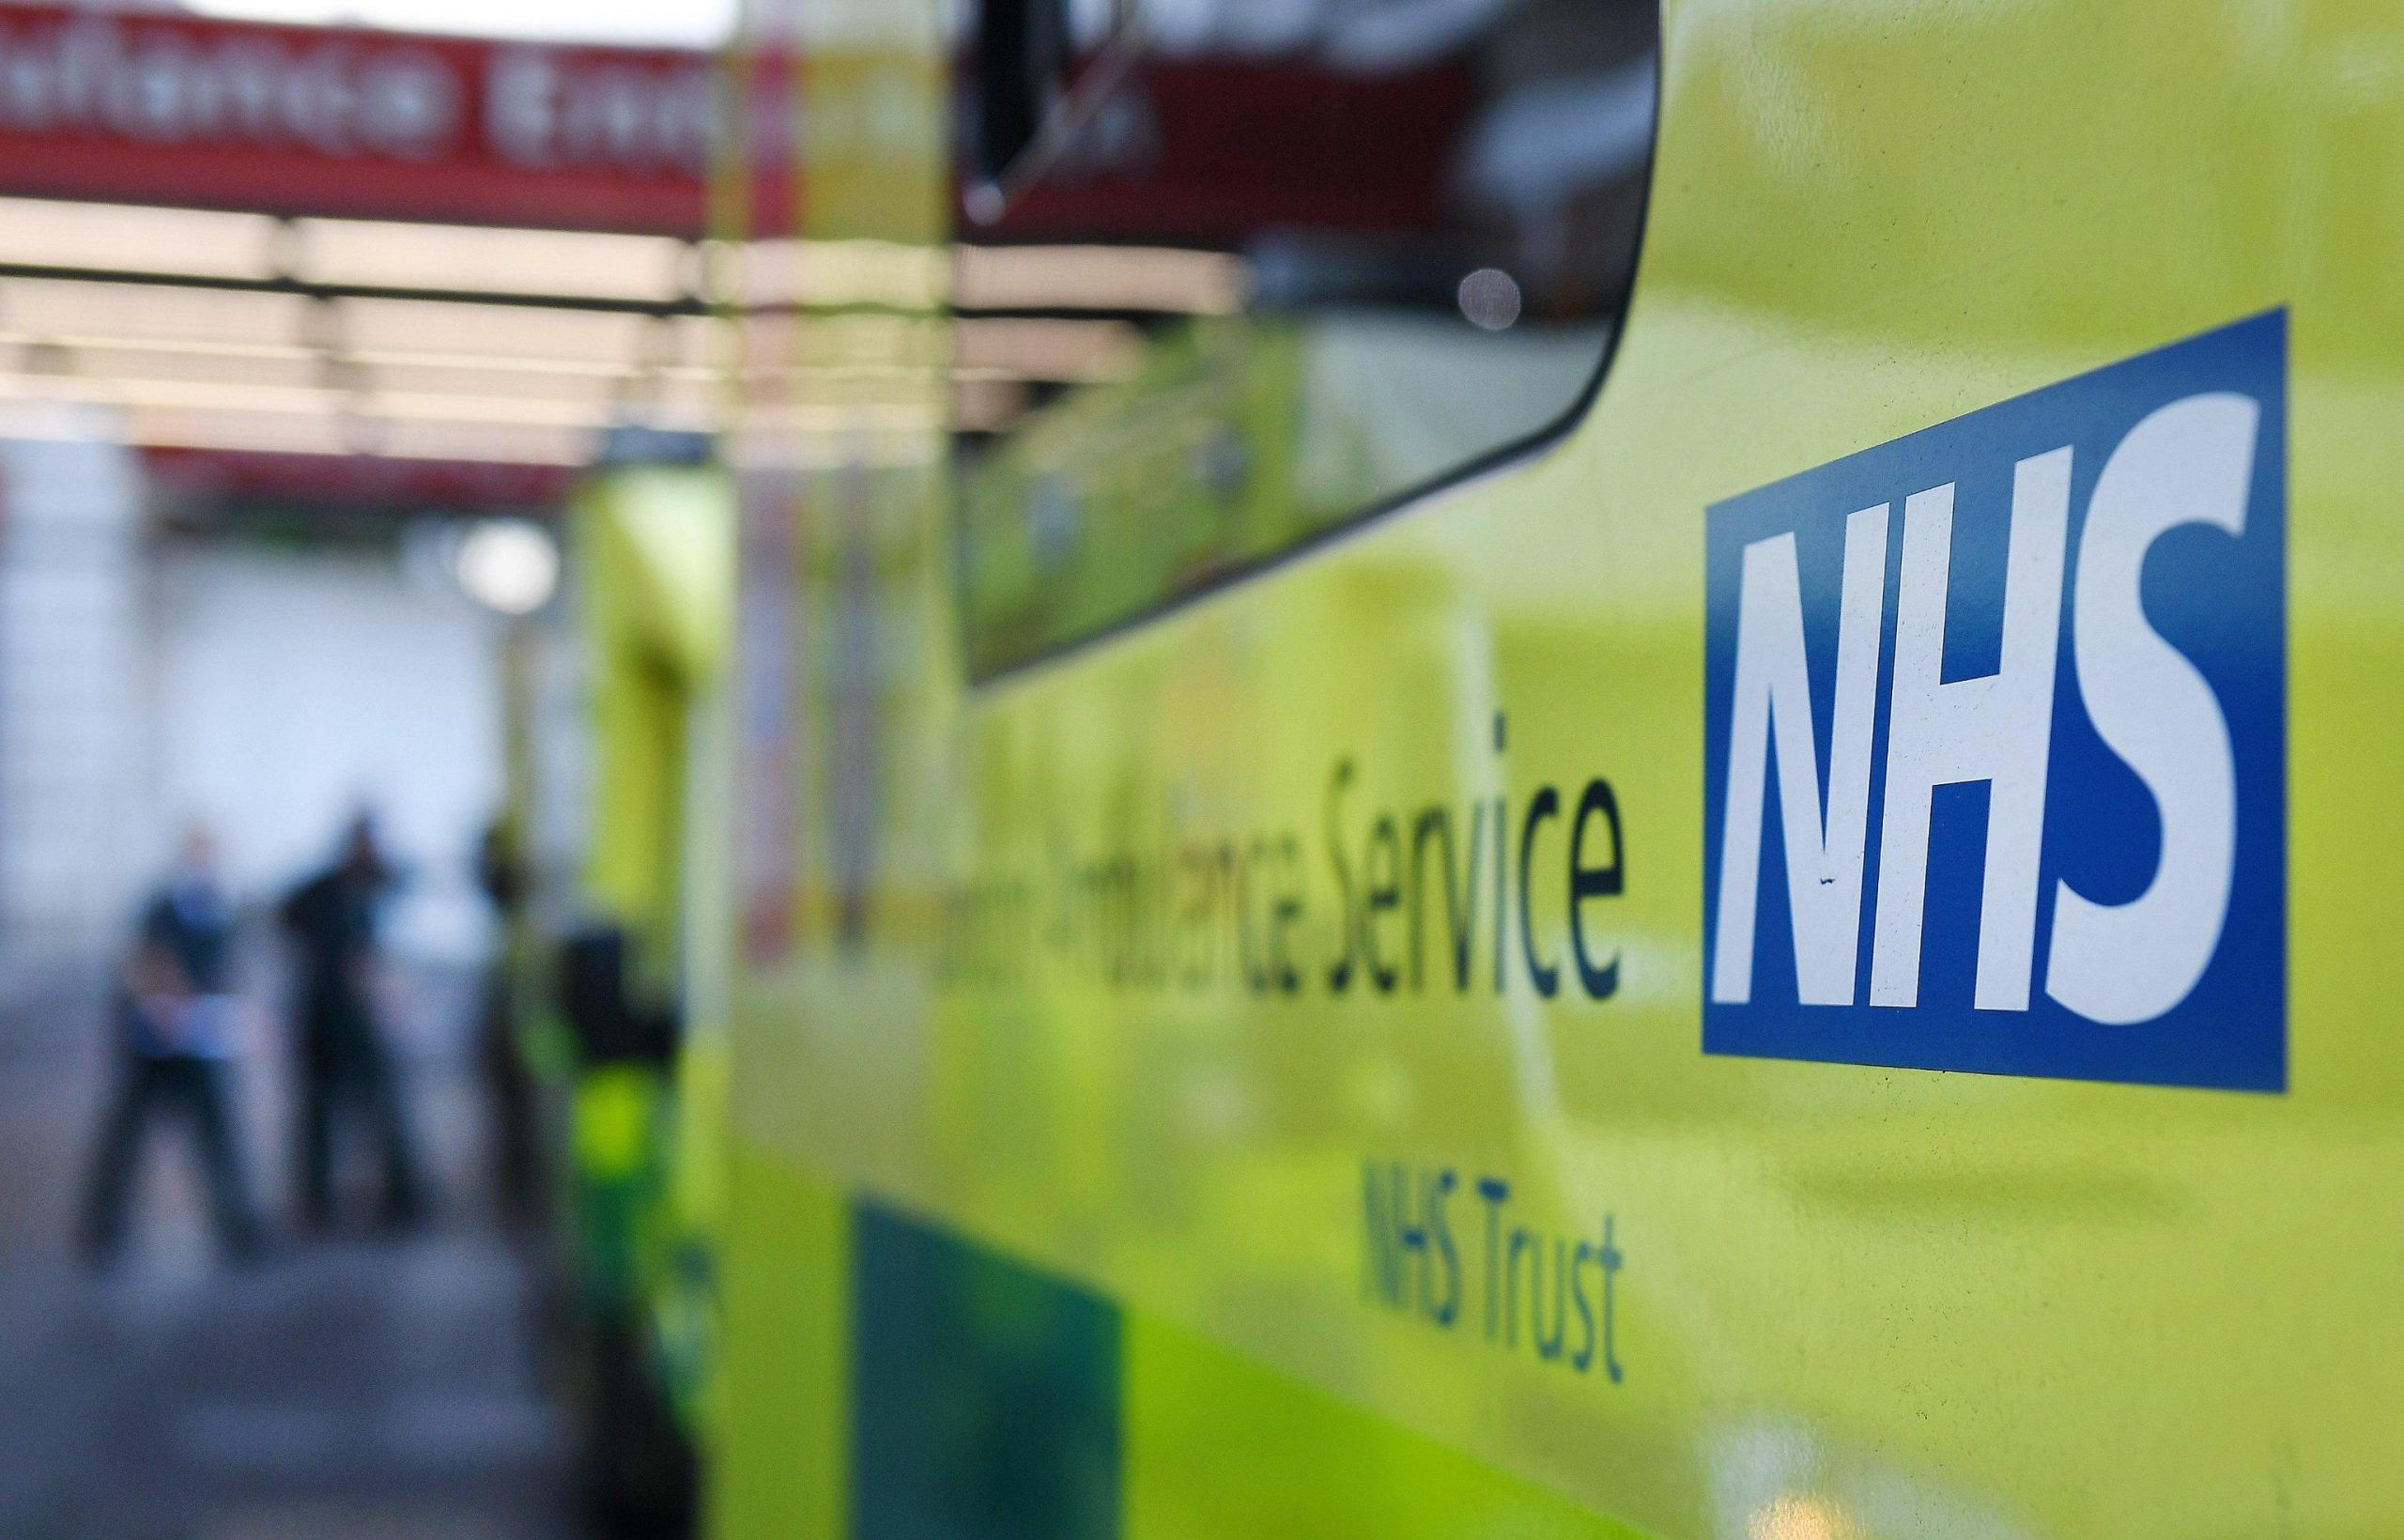 NHS computer system hit in reported cyber attack